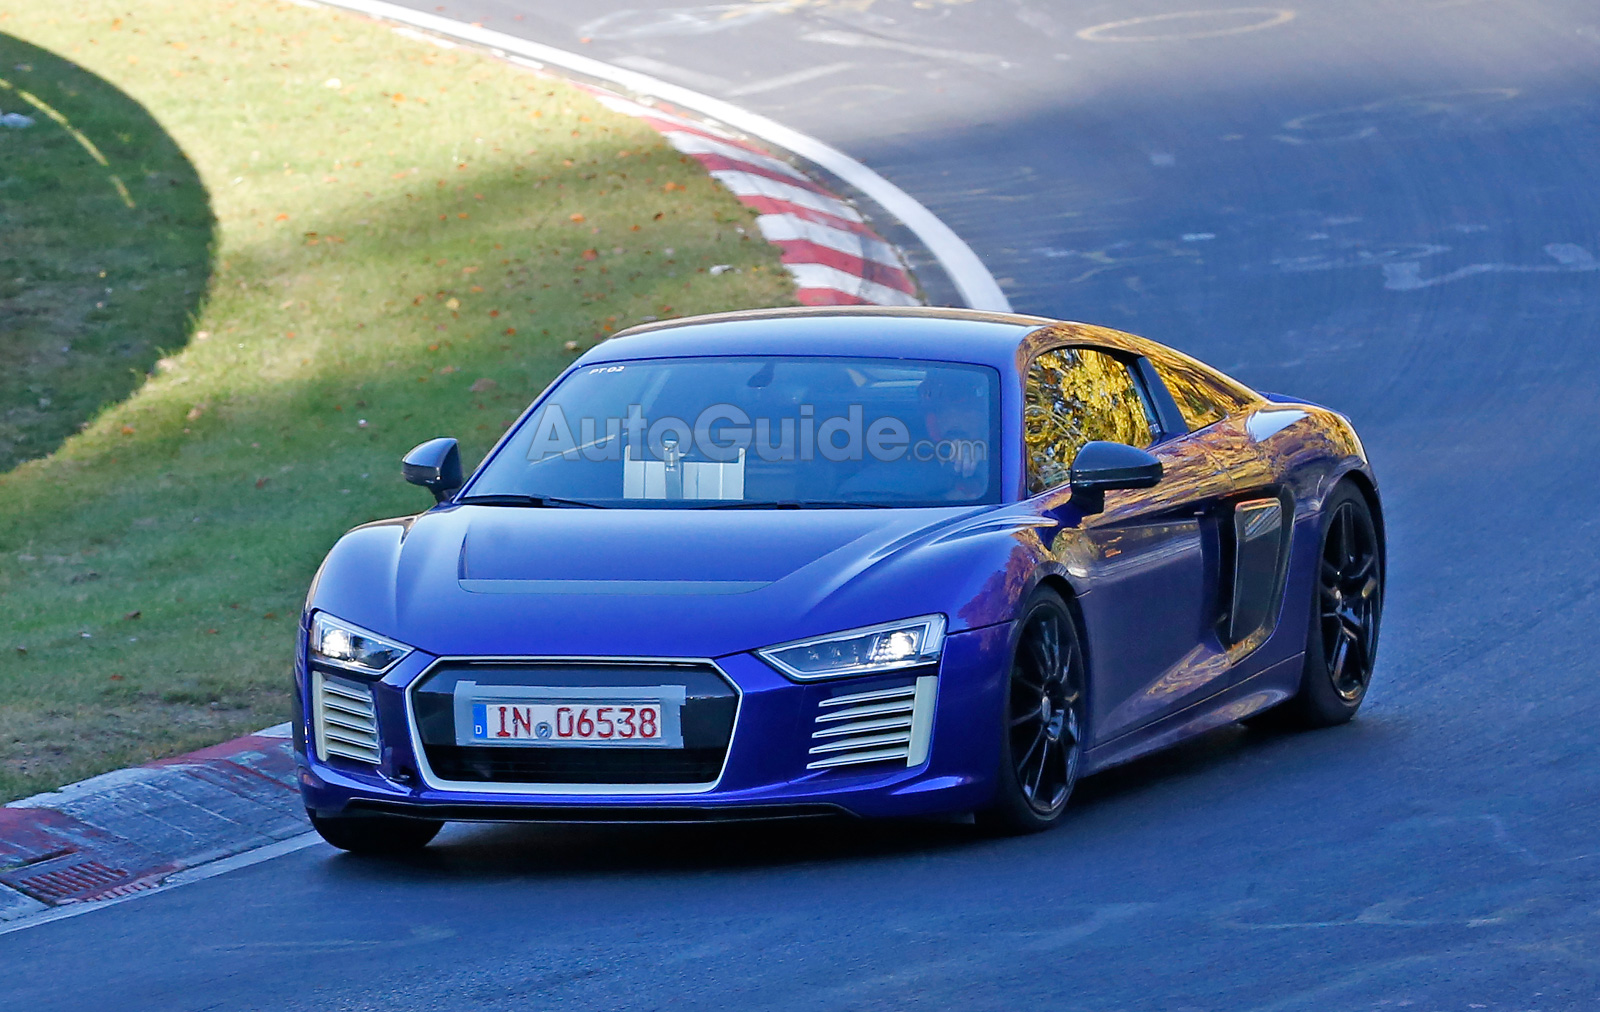 ... Audi R8 E Tron Nurburgring Spy Photos 02 ...